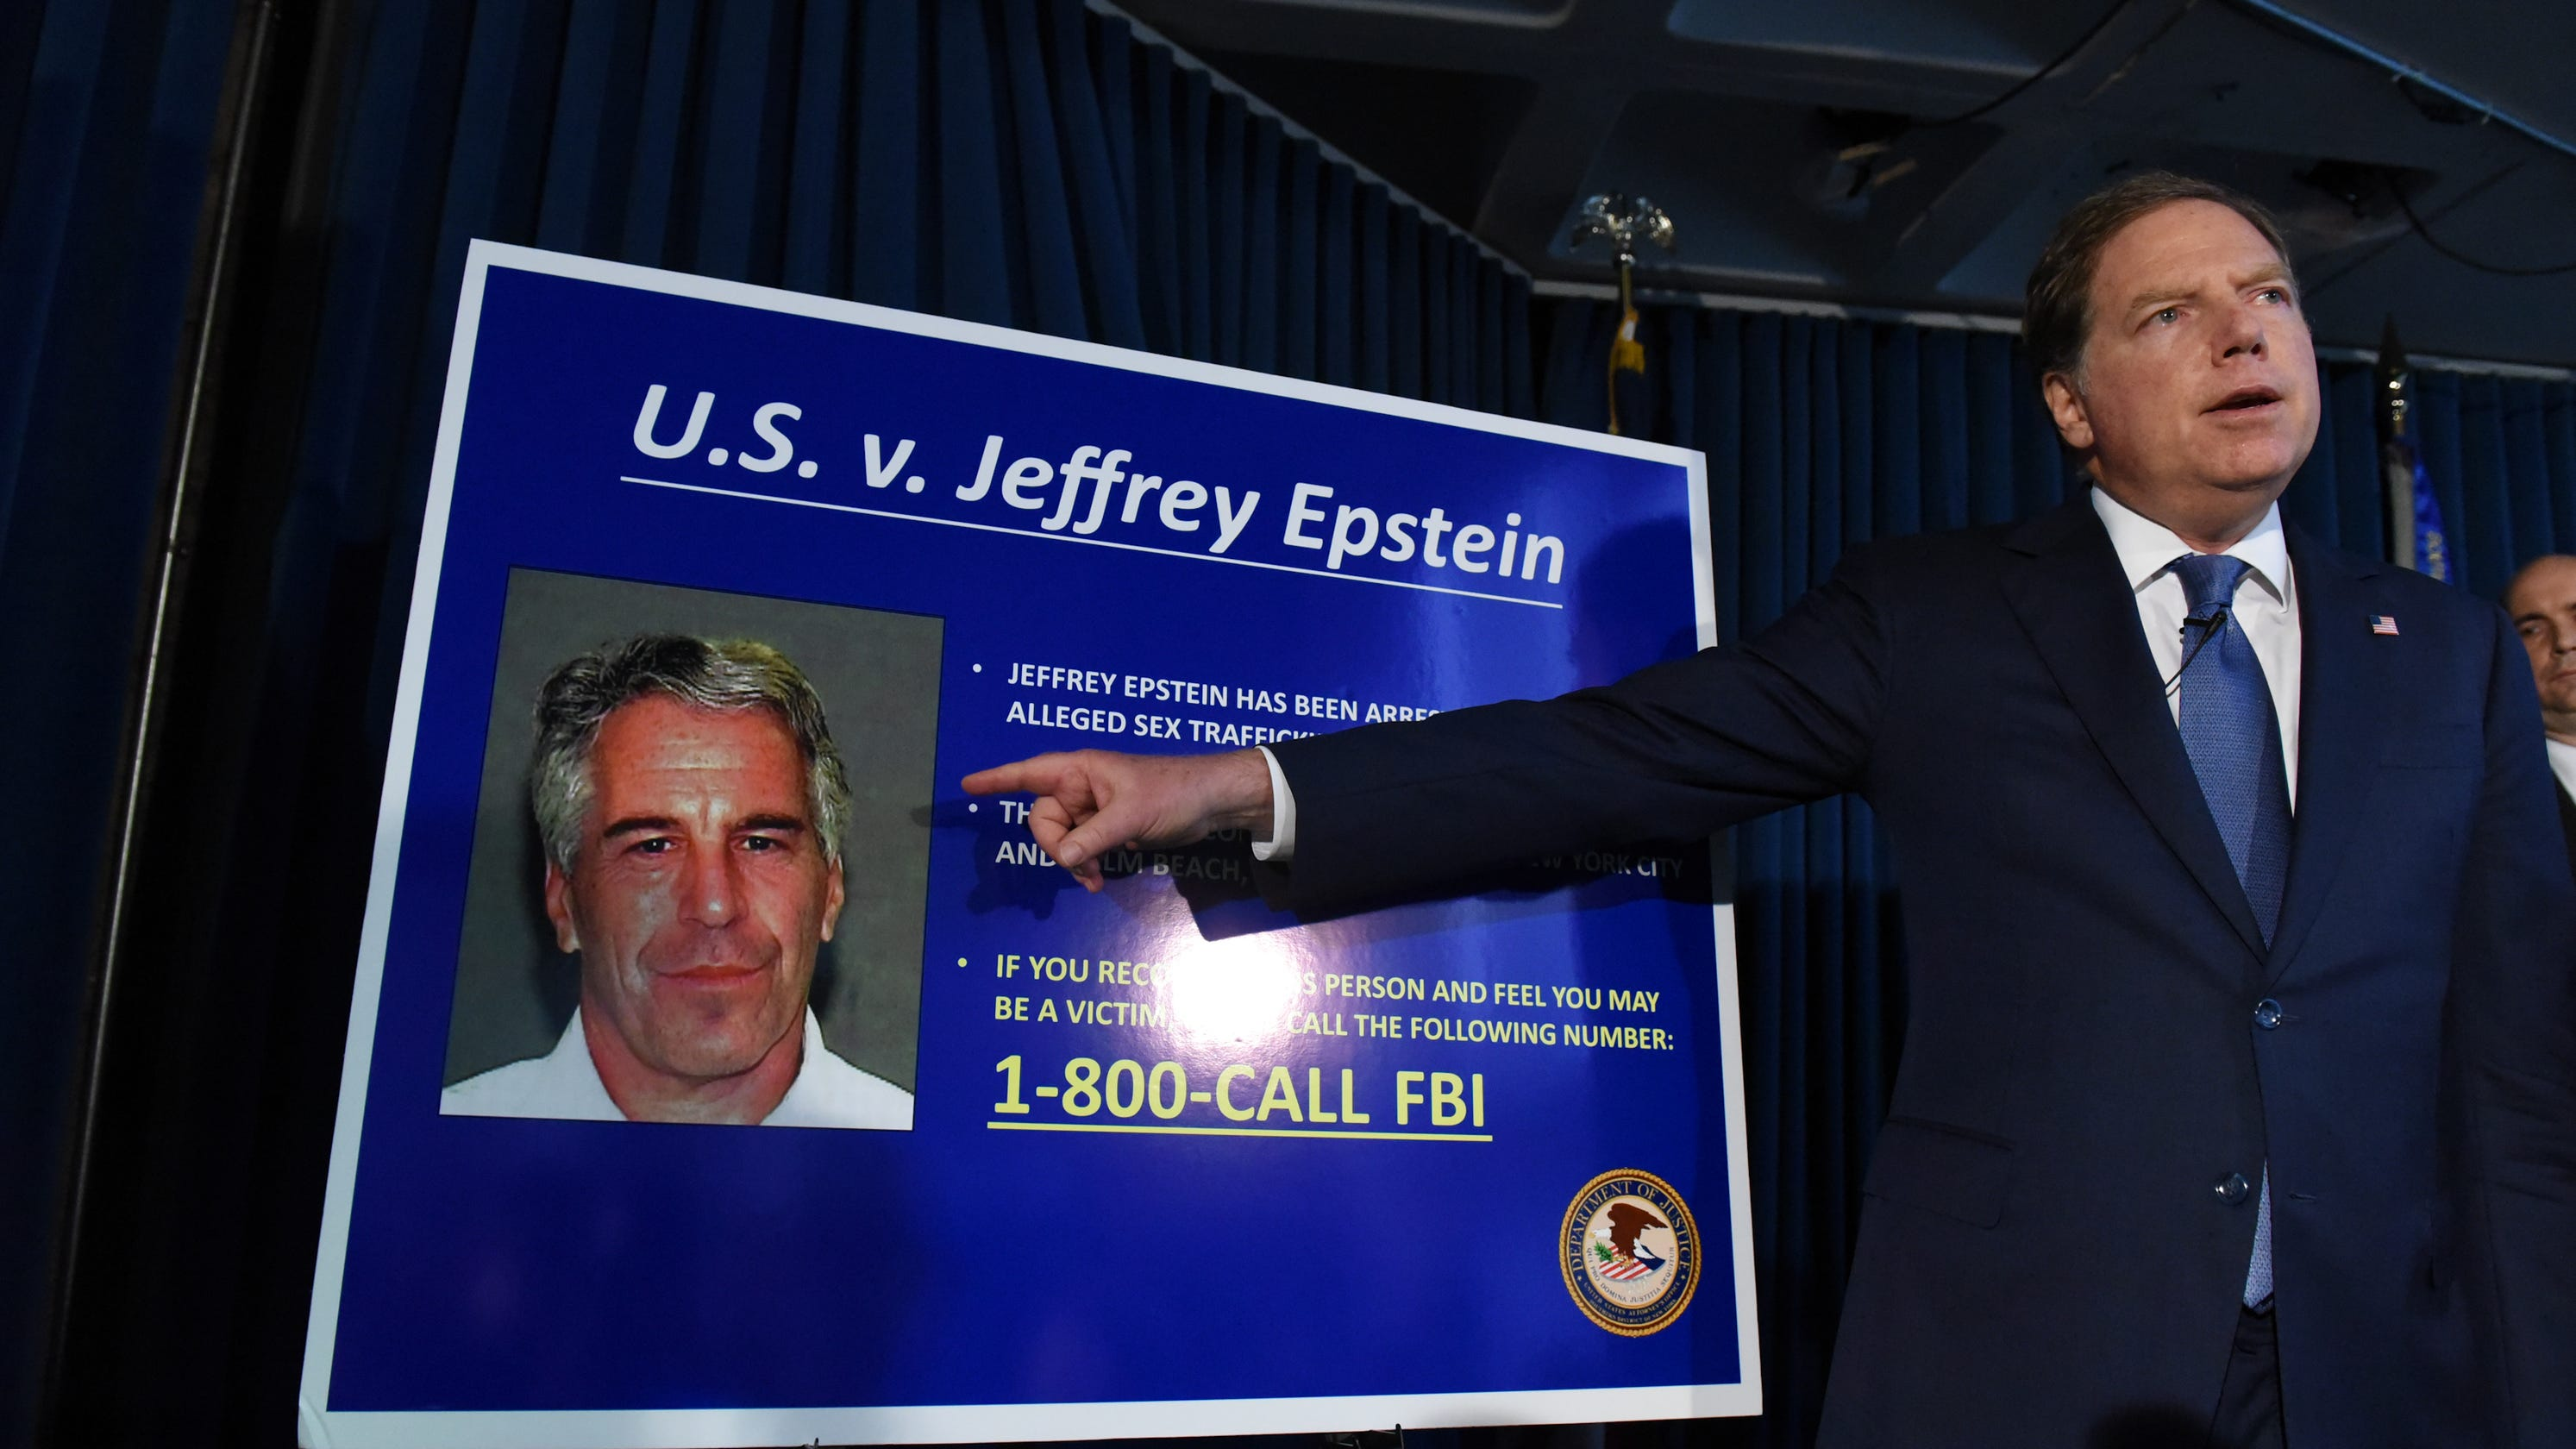 'He was the center of it': With Jeff Epstein dead, charging co-conspirators likely an uphill battle, experts say